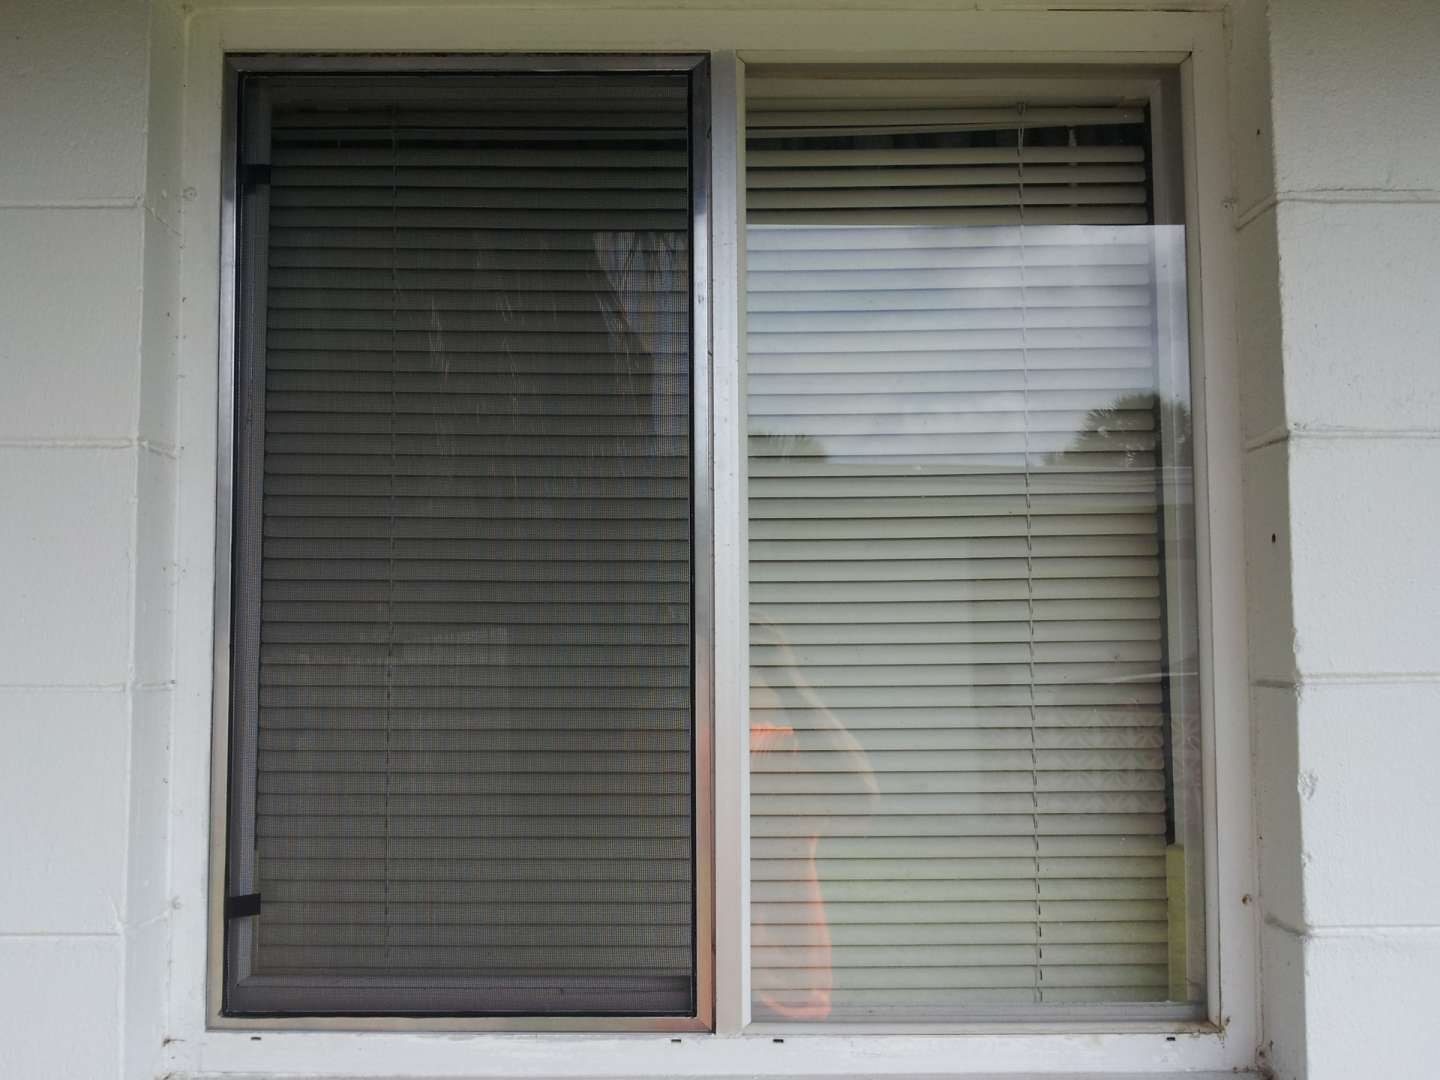 window-screen-05.jpg